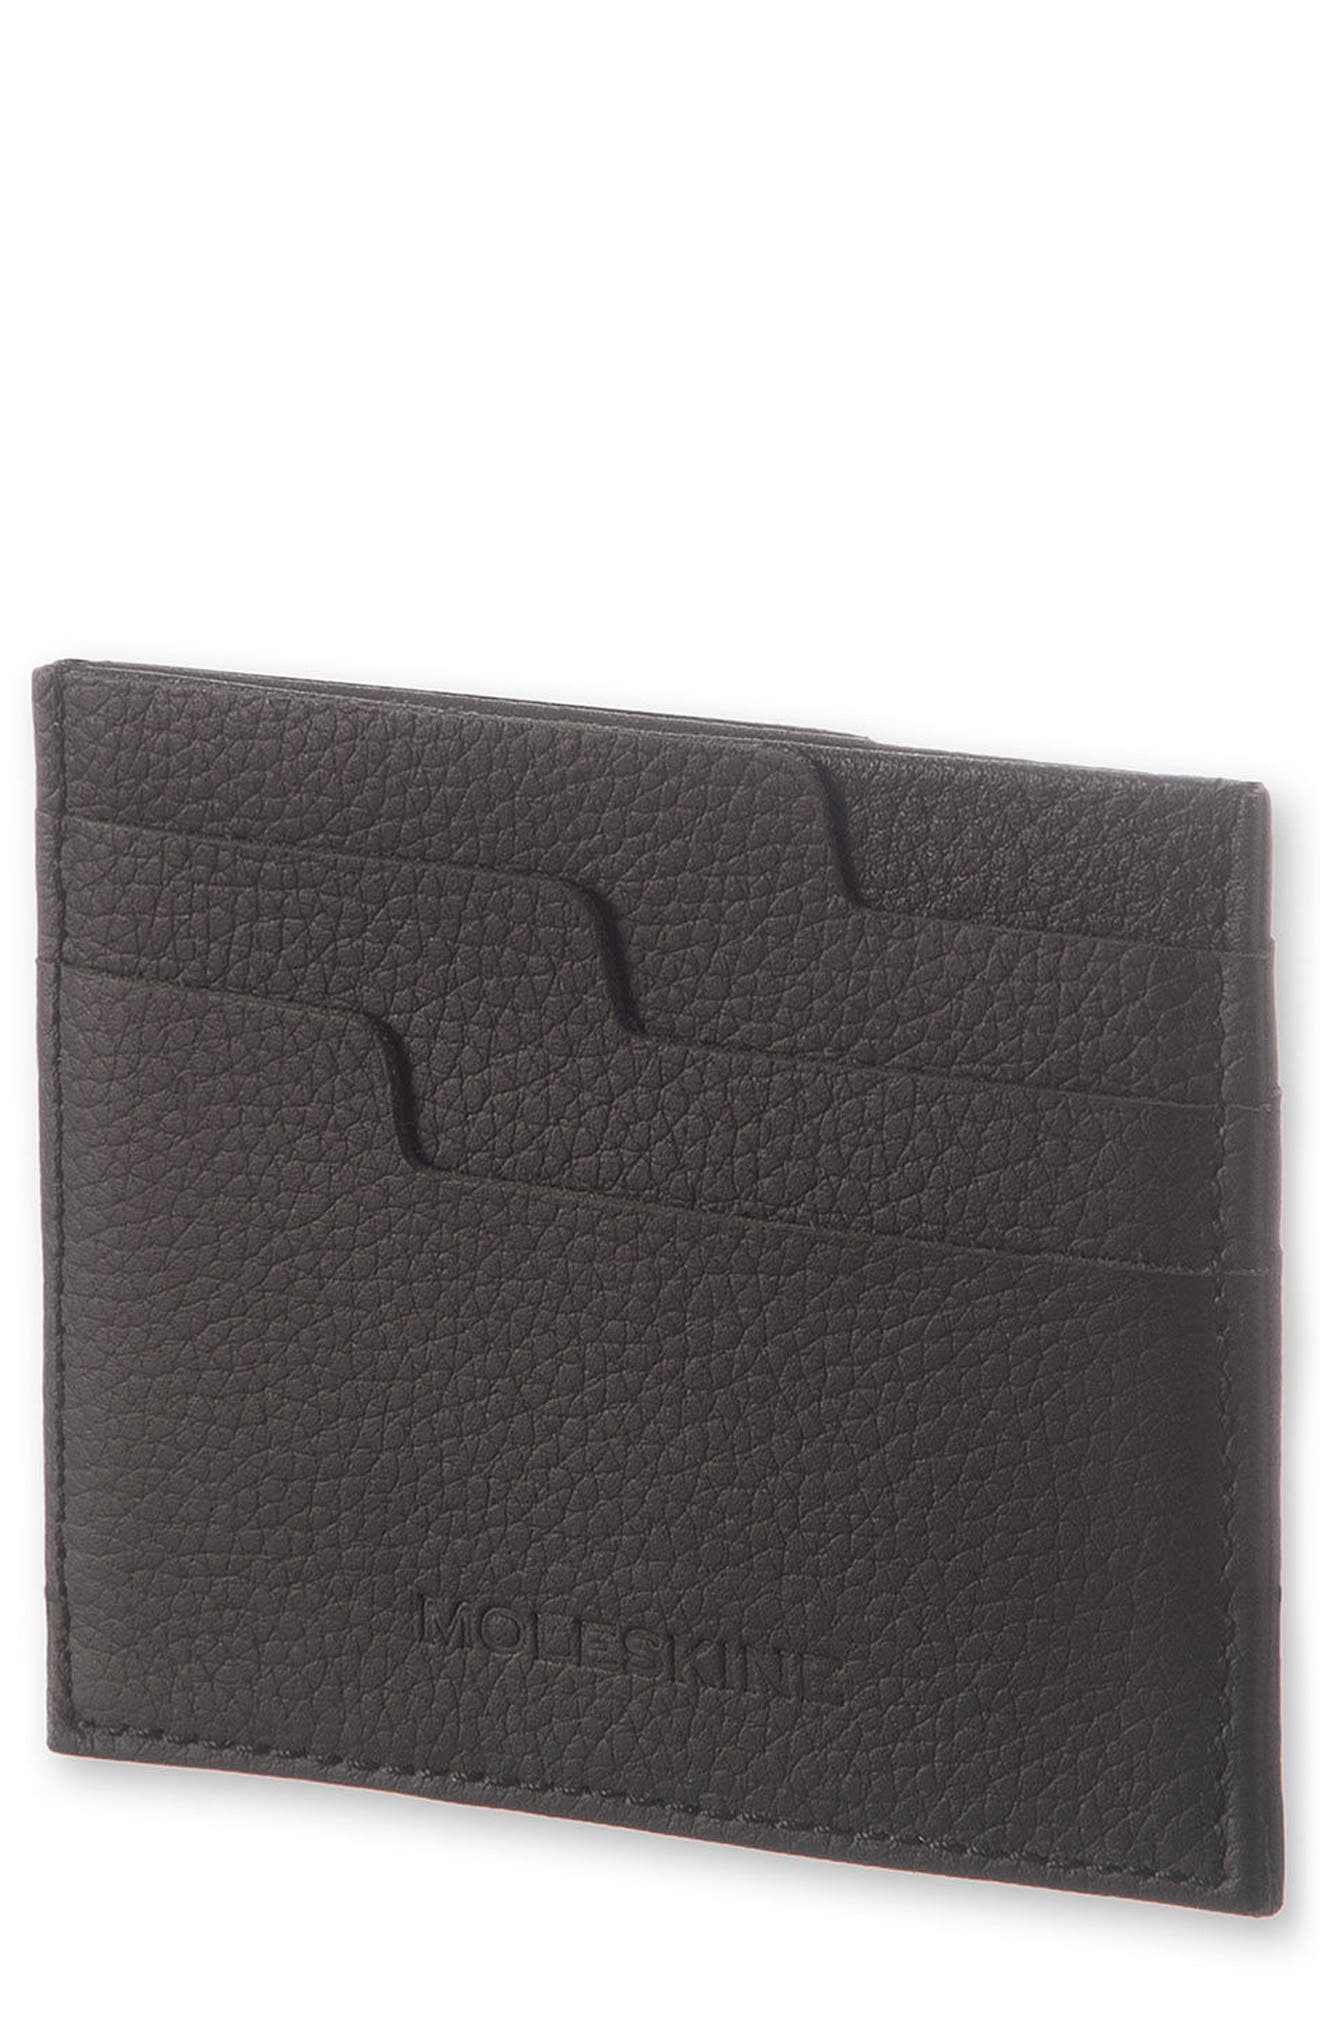 Moleskin Lineage Leather Card Case,                             Main thumbnail 1, color,                             Black